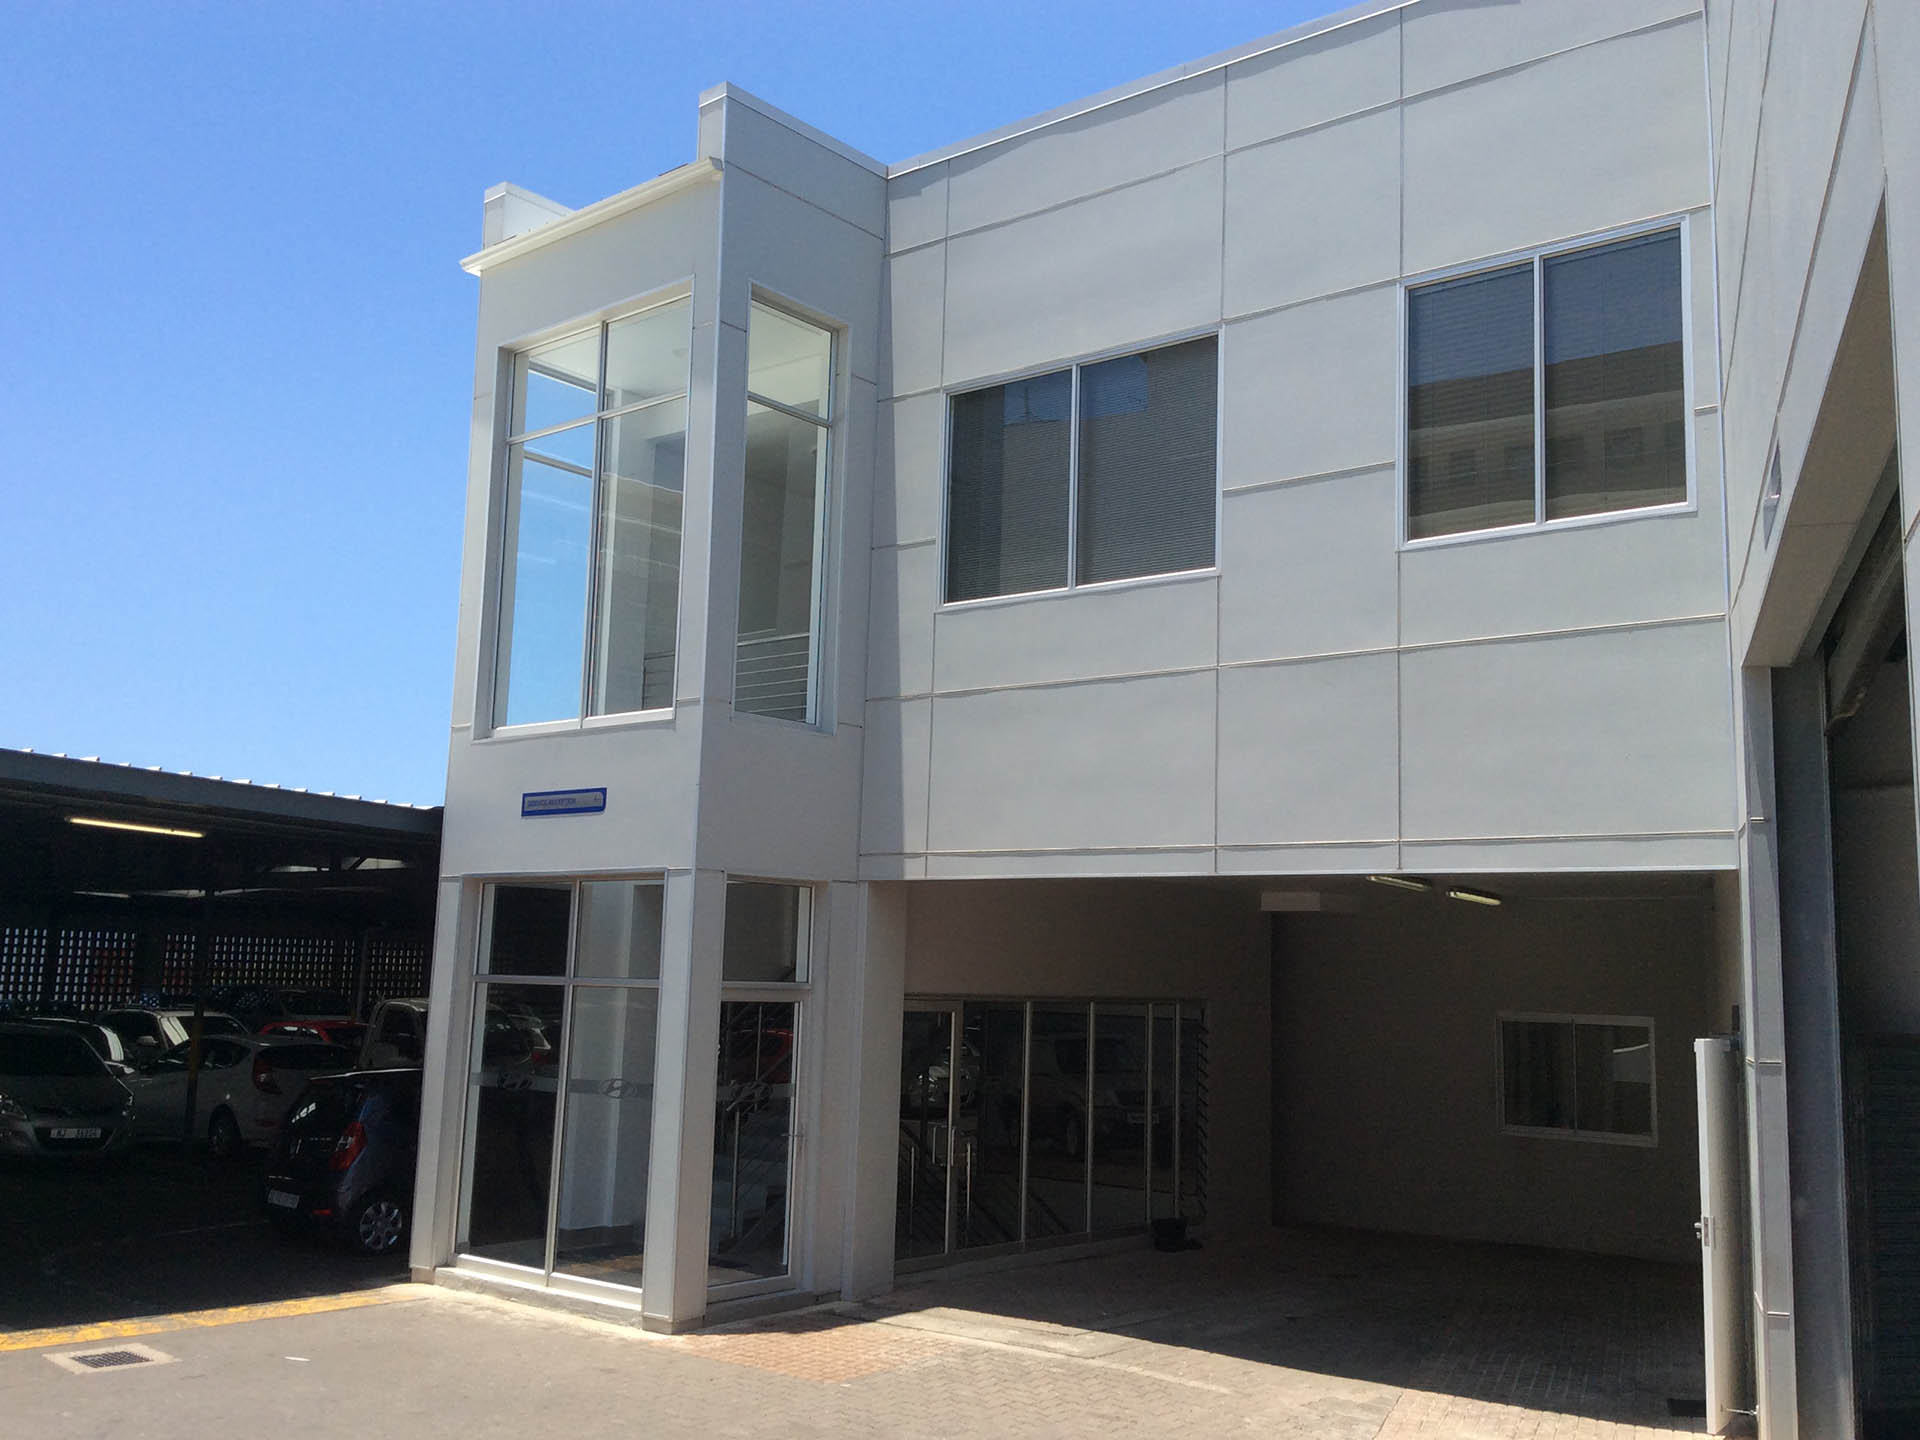 hyundai gateway shospec light-steel-frame-LSF-construction-shopfitting-partitioning-drywalling